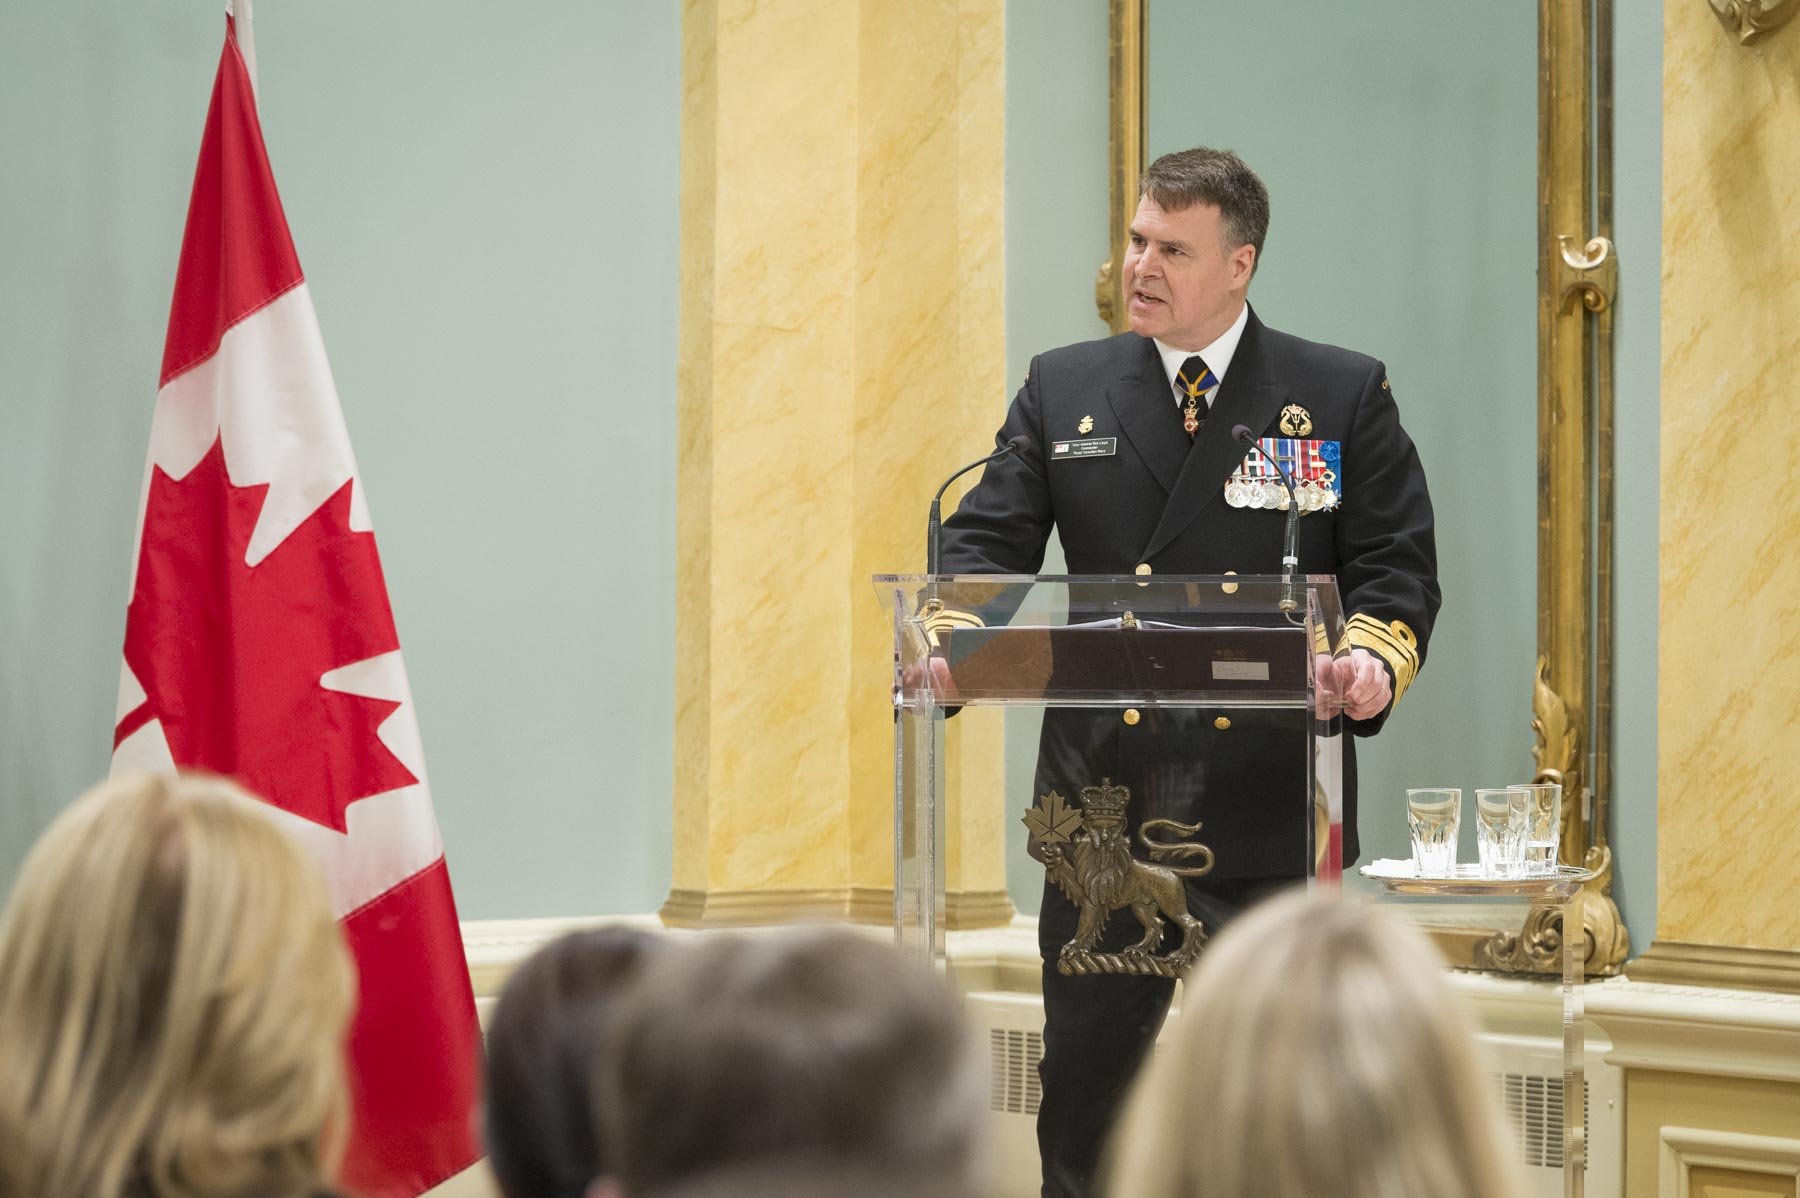 The ceremony concluded with remarks from Vice-Admiral Ron Lloyd, Commander of the Royal Canadian Navy, who congratulated the recipients for their remarkable contributions to Canada's military heritage.